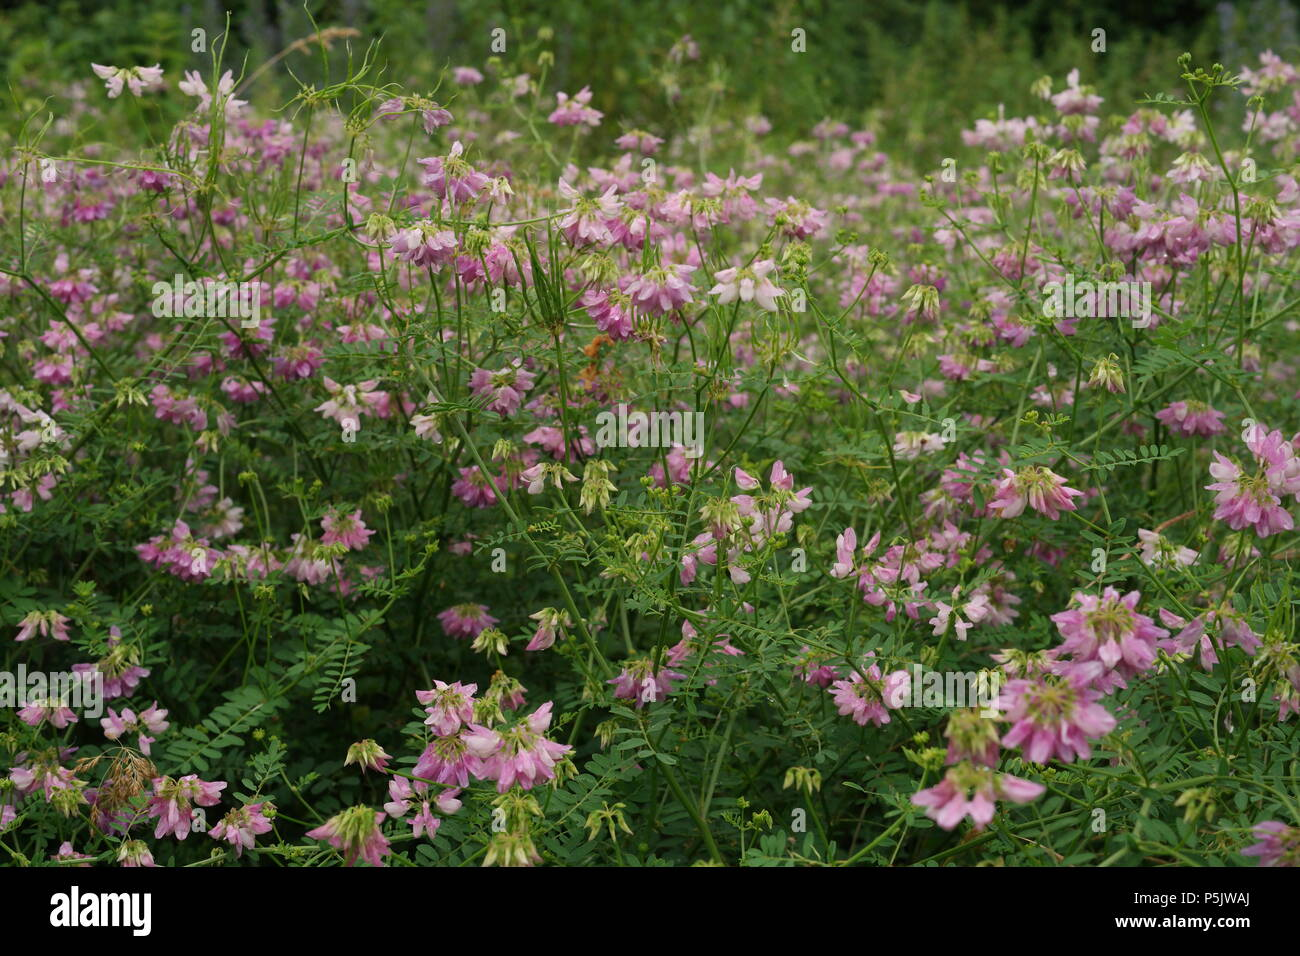 Securigera varia / Crownvetch / Bunte Kronwicke Foto Stock